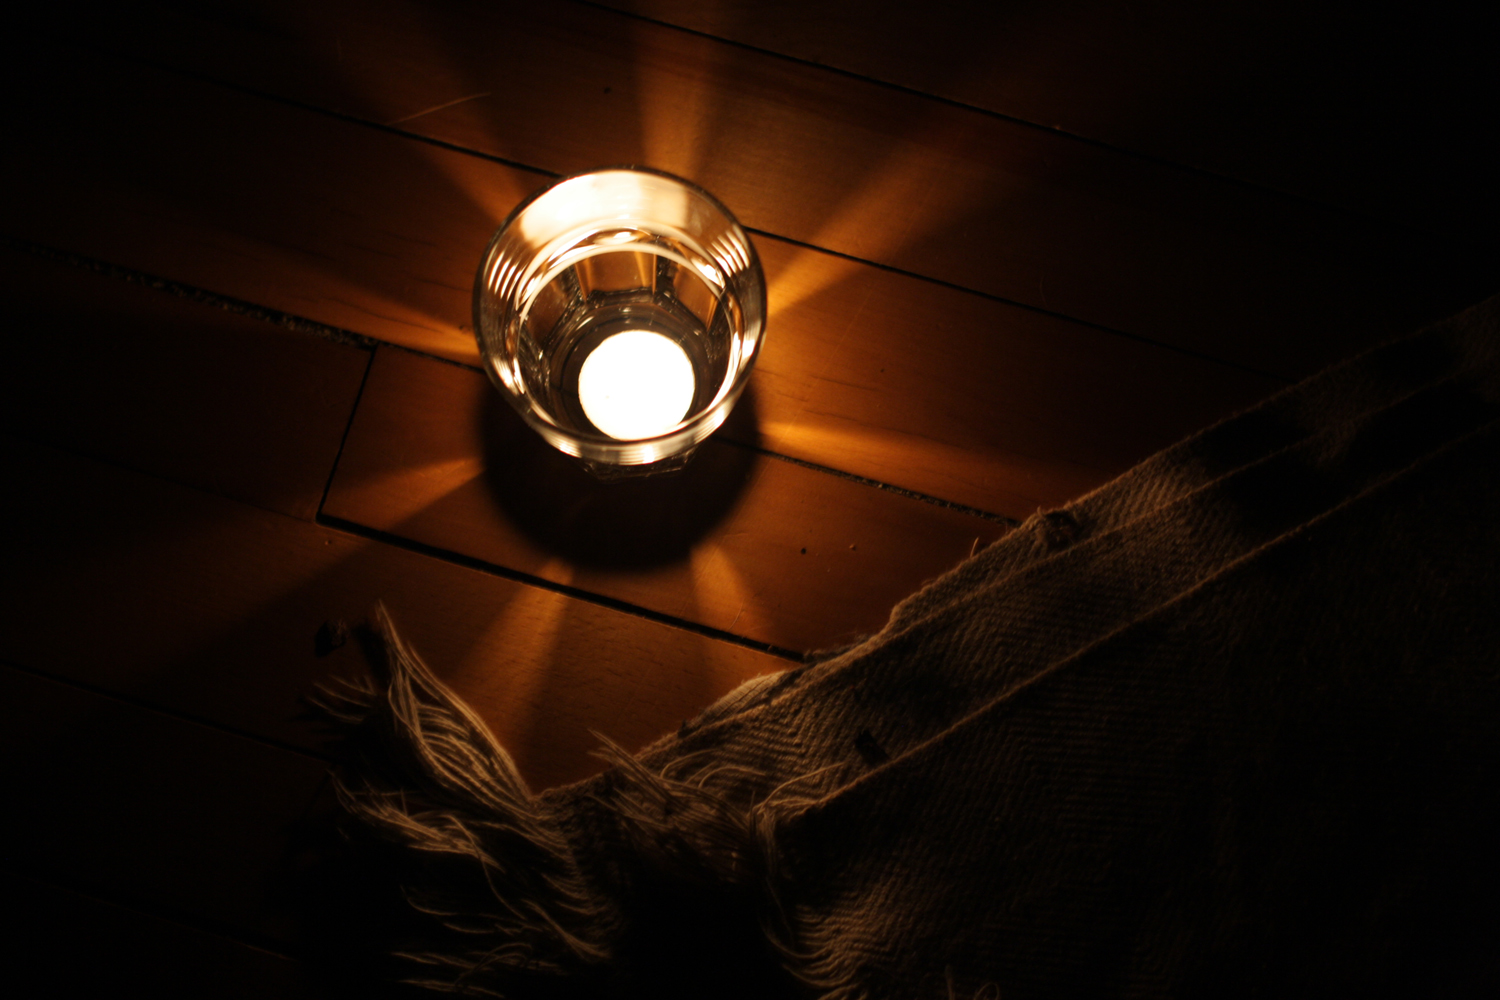 B16_Dec08_Candle_Power_Out_02.jpg